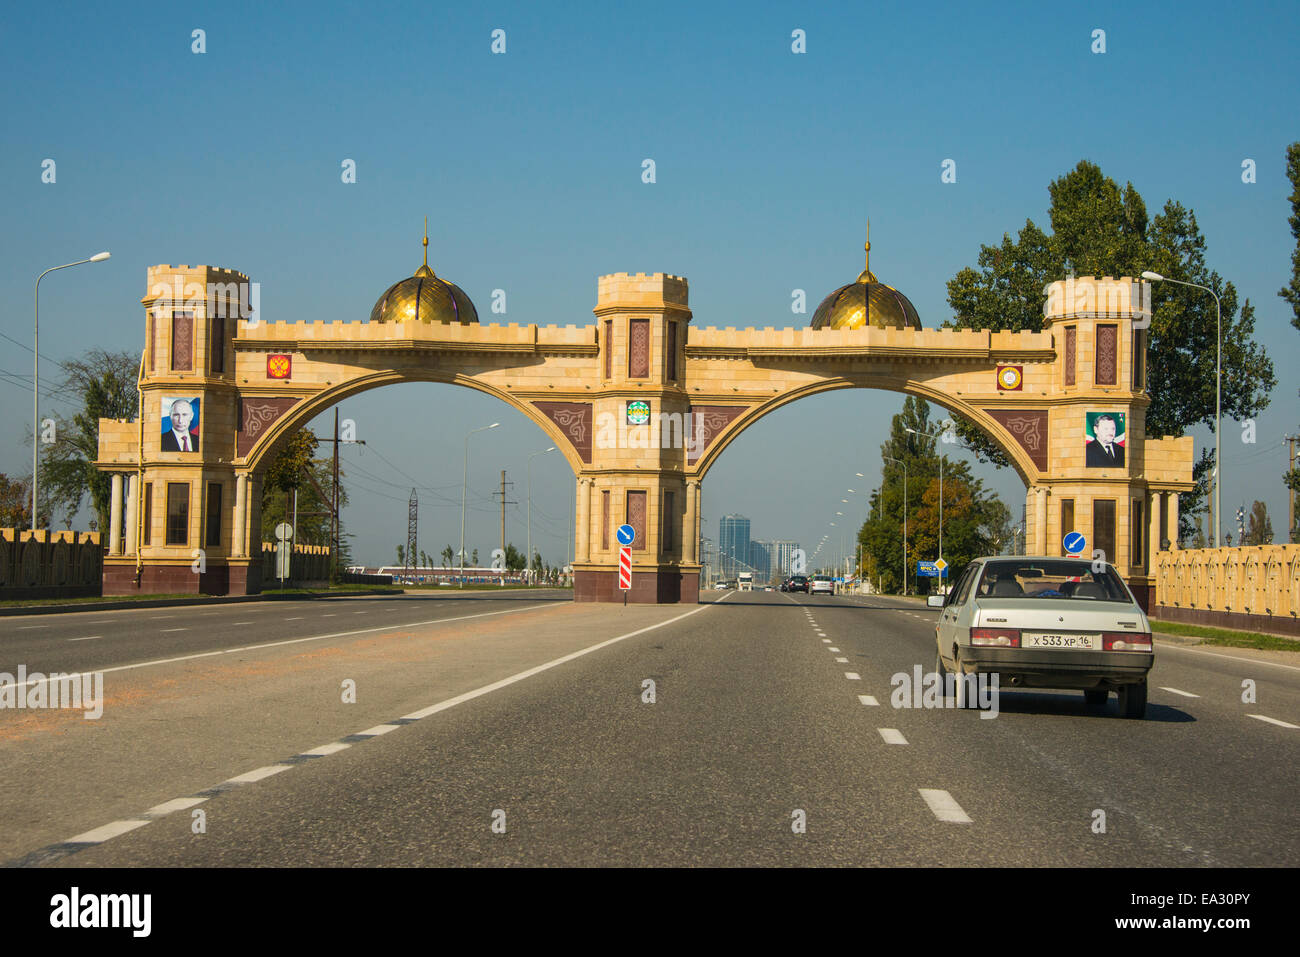 Town entrance of Argun, Chechnya, Caucasus, Russia, Europe - Stock Image